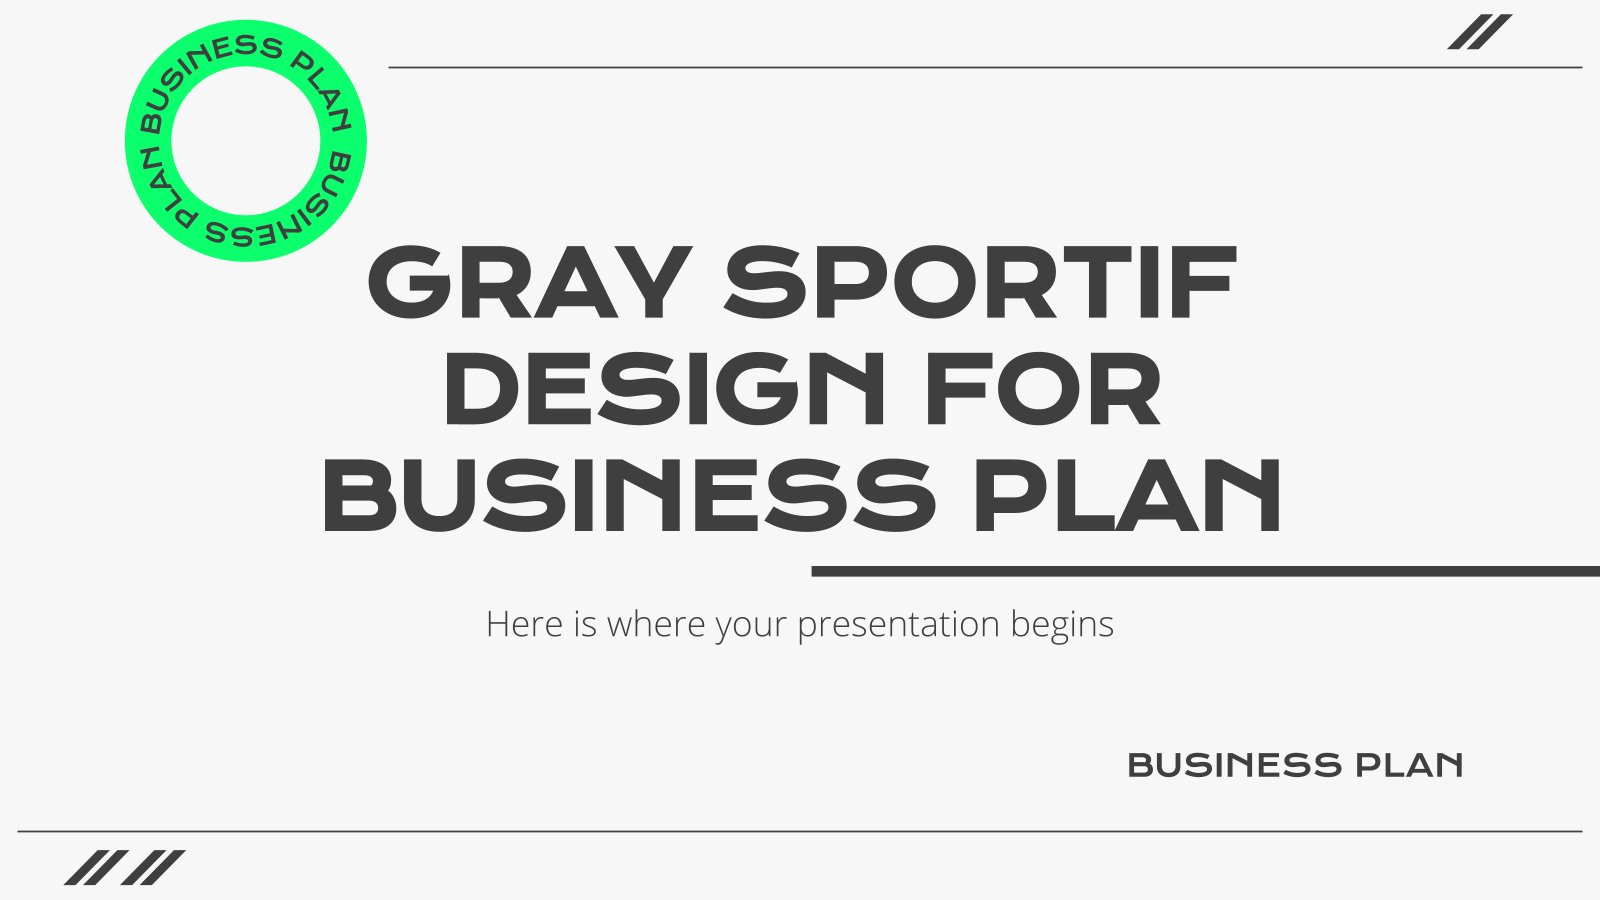 Gray Sportif Design for Business Plan presentation template